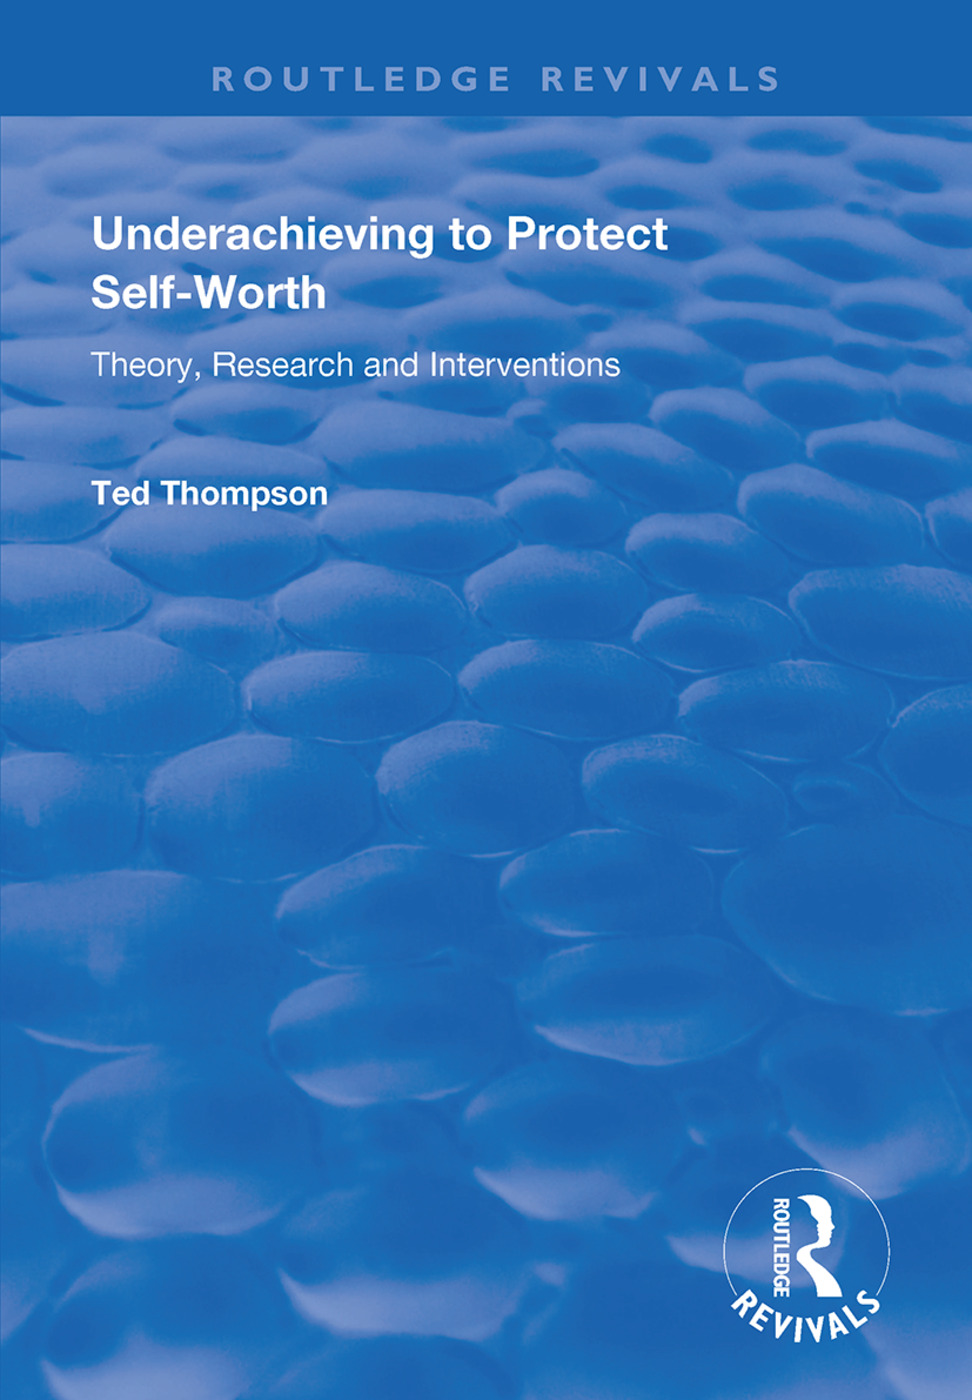 Underachieving to Protect Self-worth